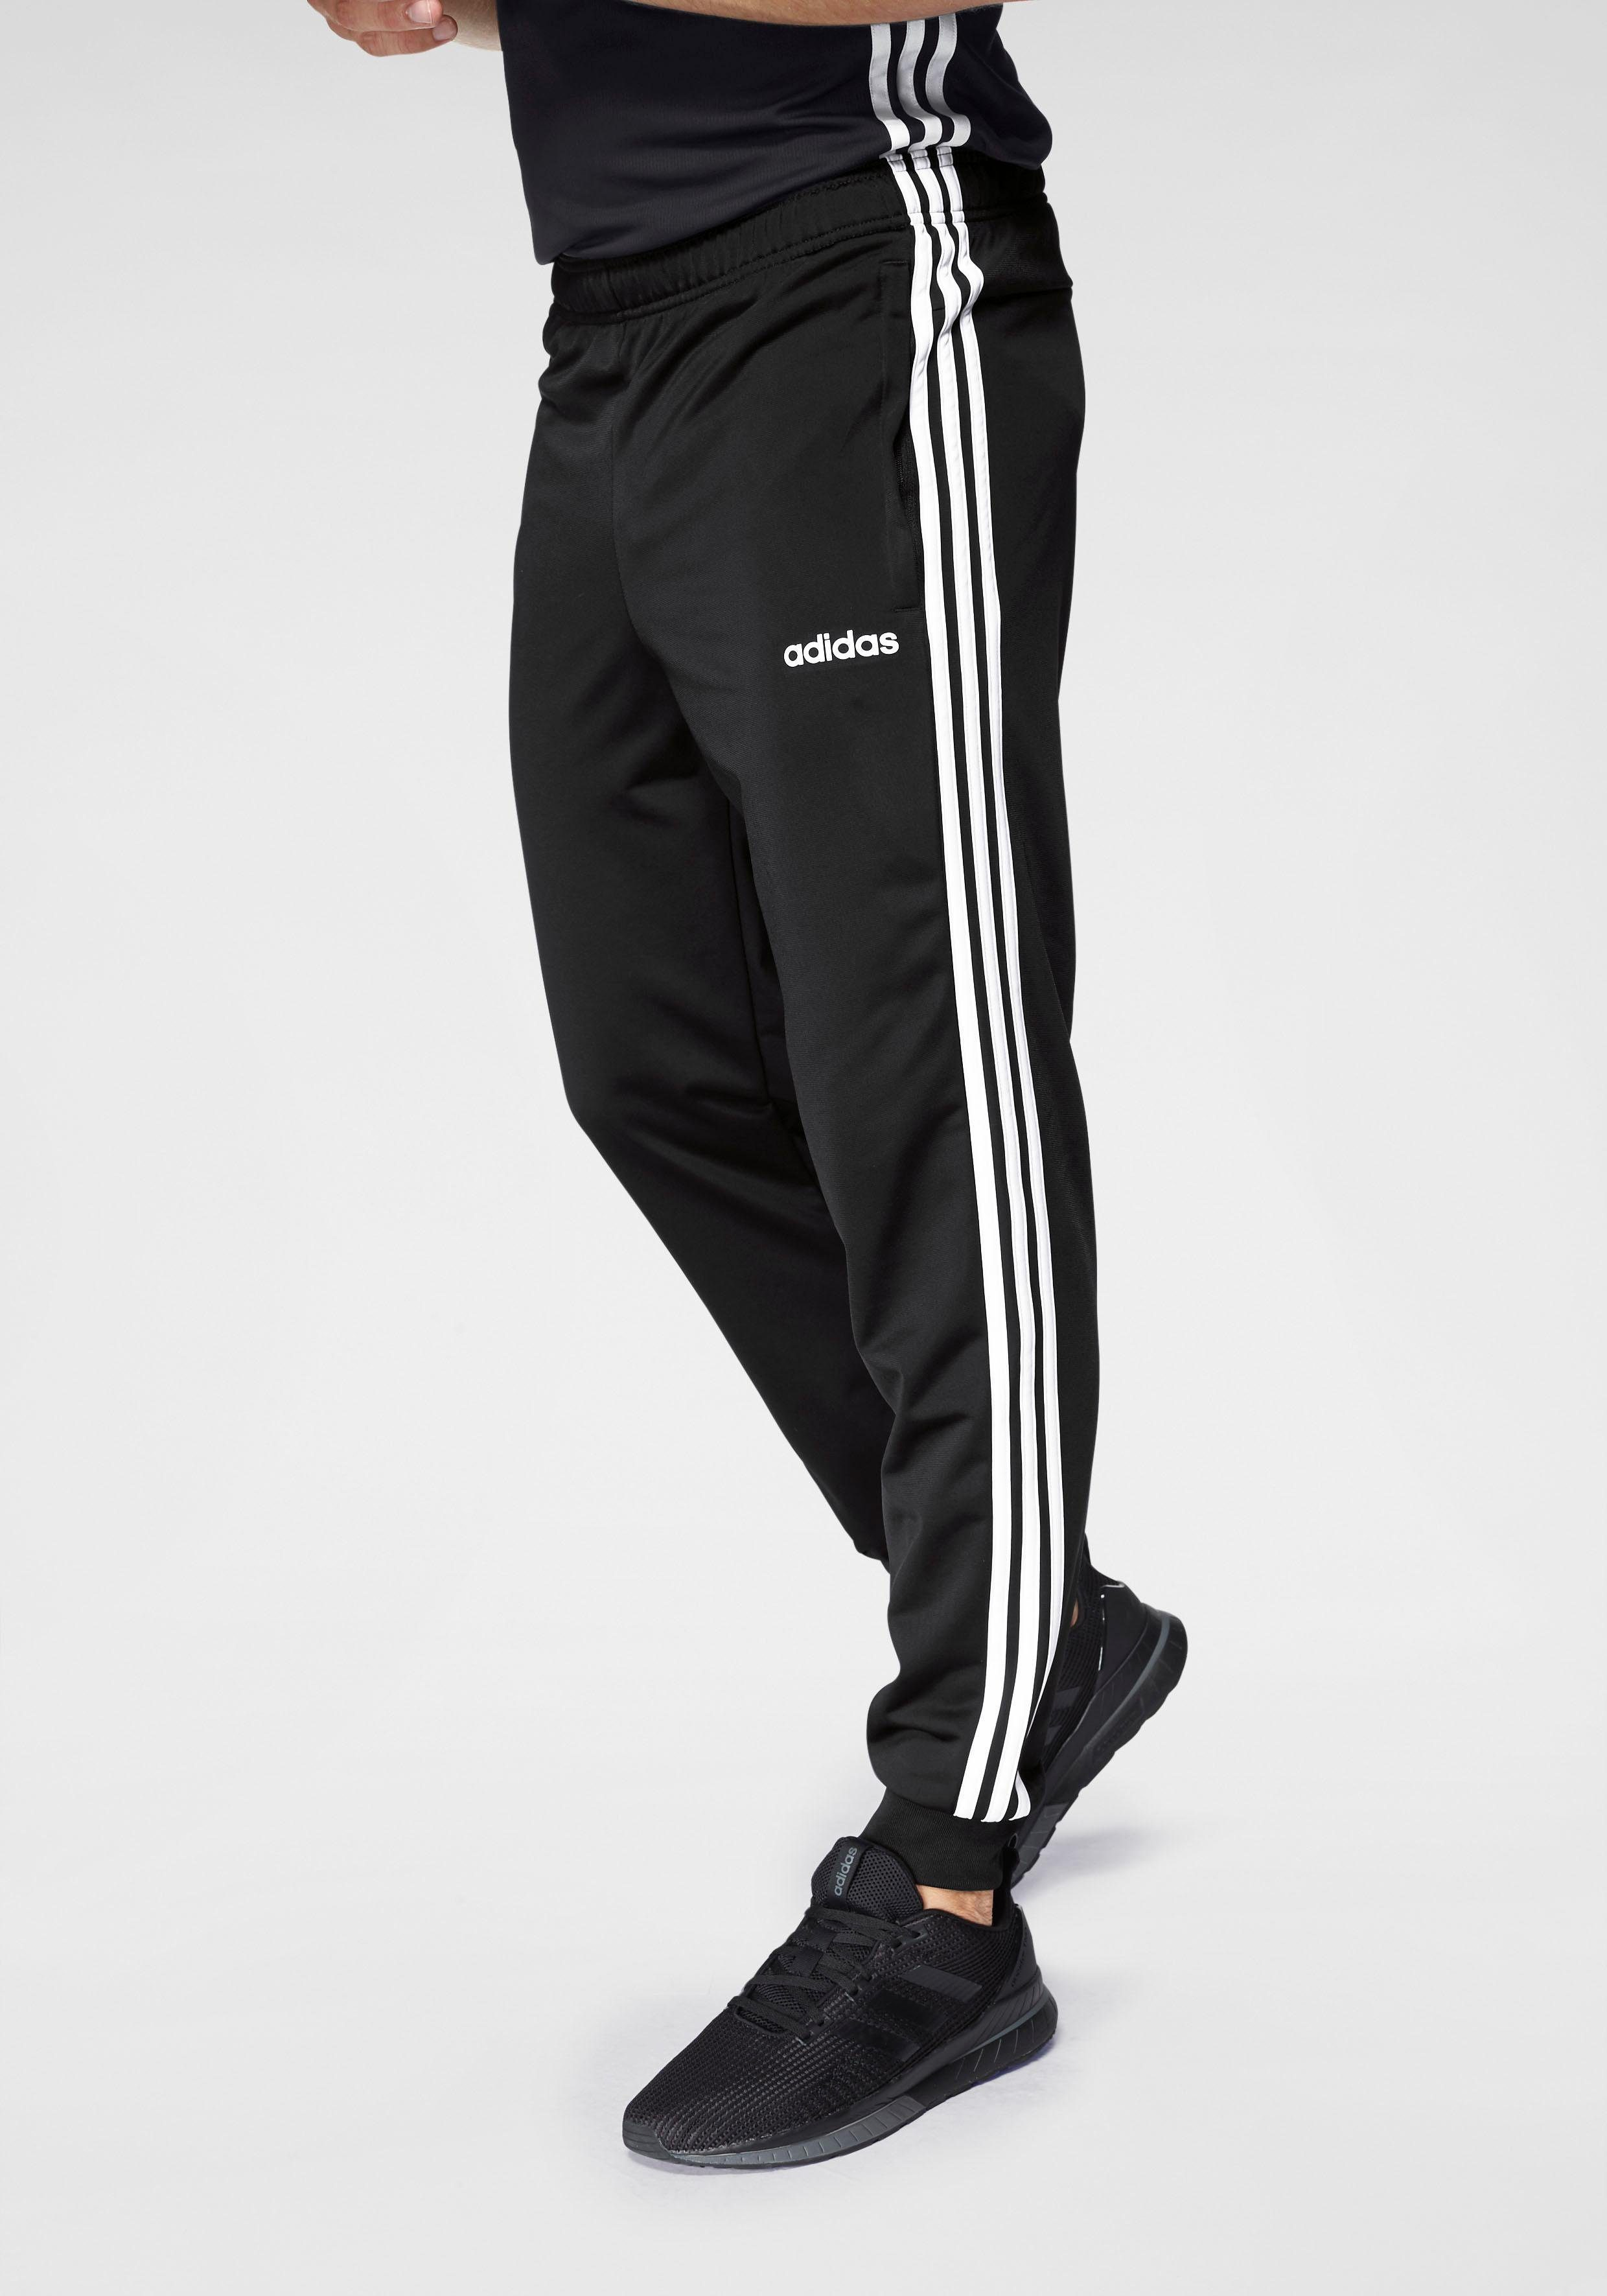 Recycling Möbel Adidas Jogginghose »e 3 Stripes T Pant Tric« | Otto